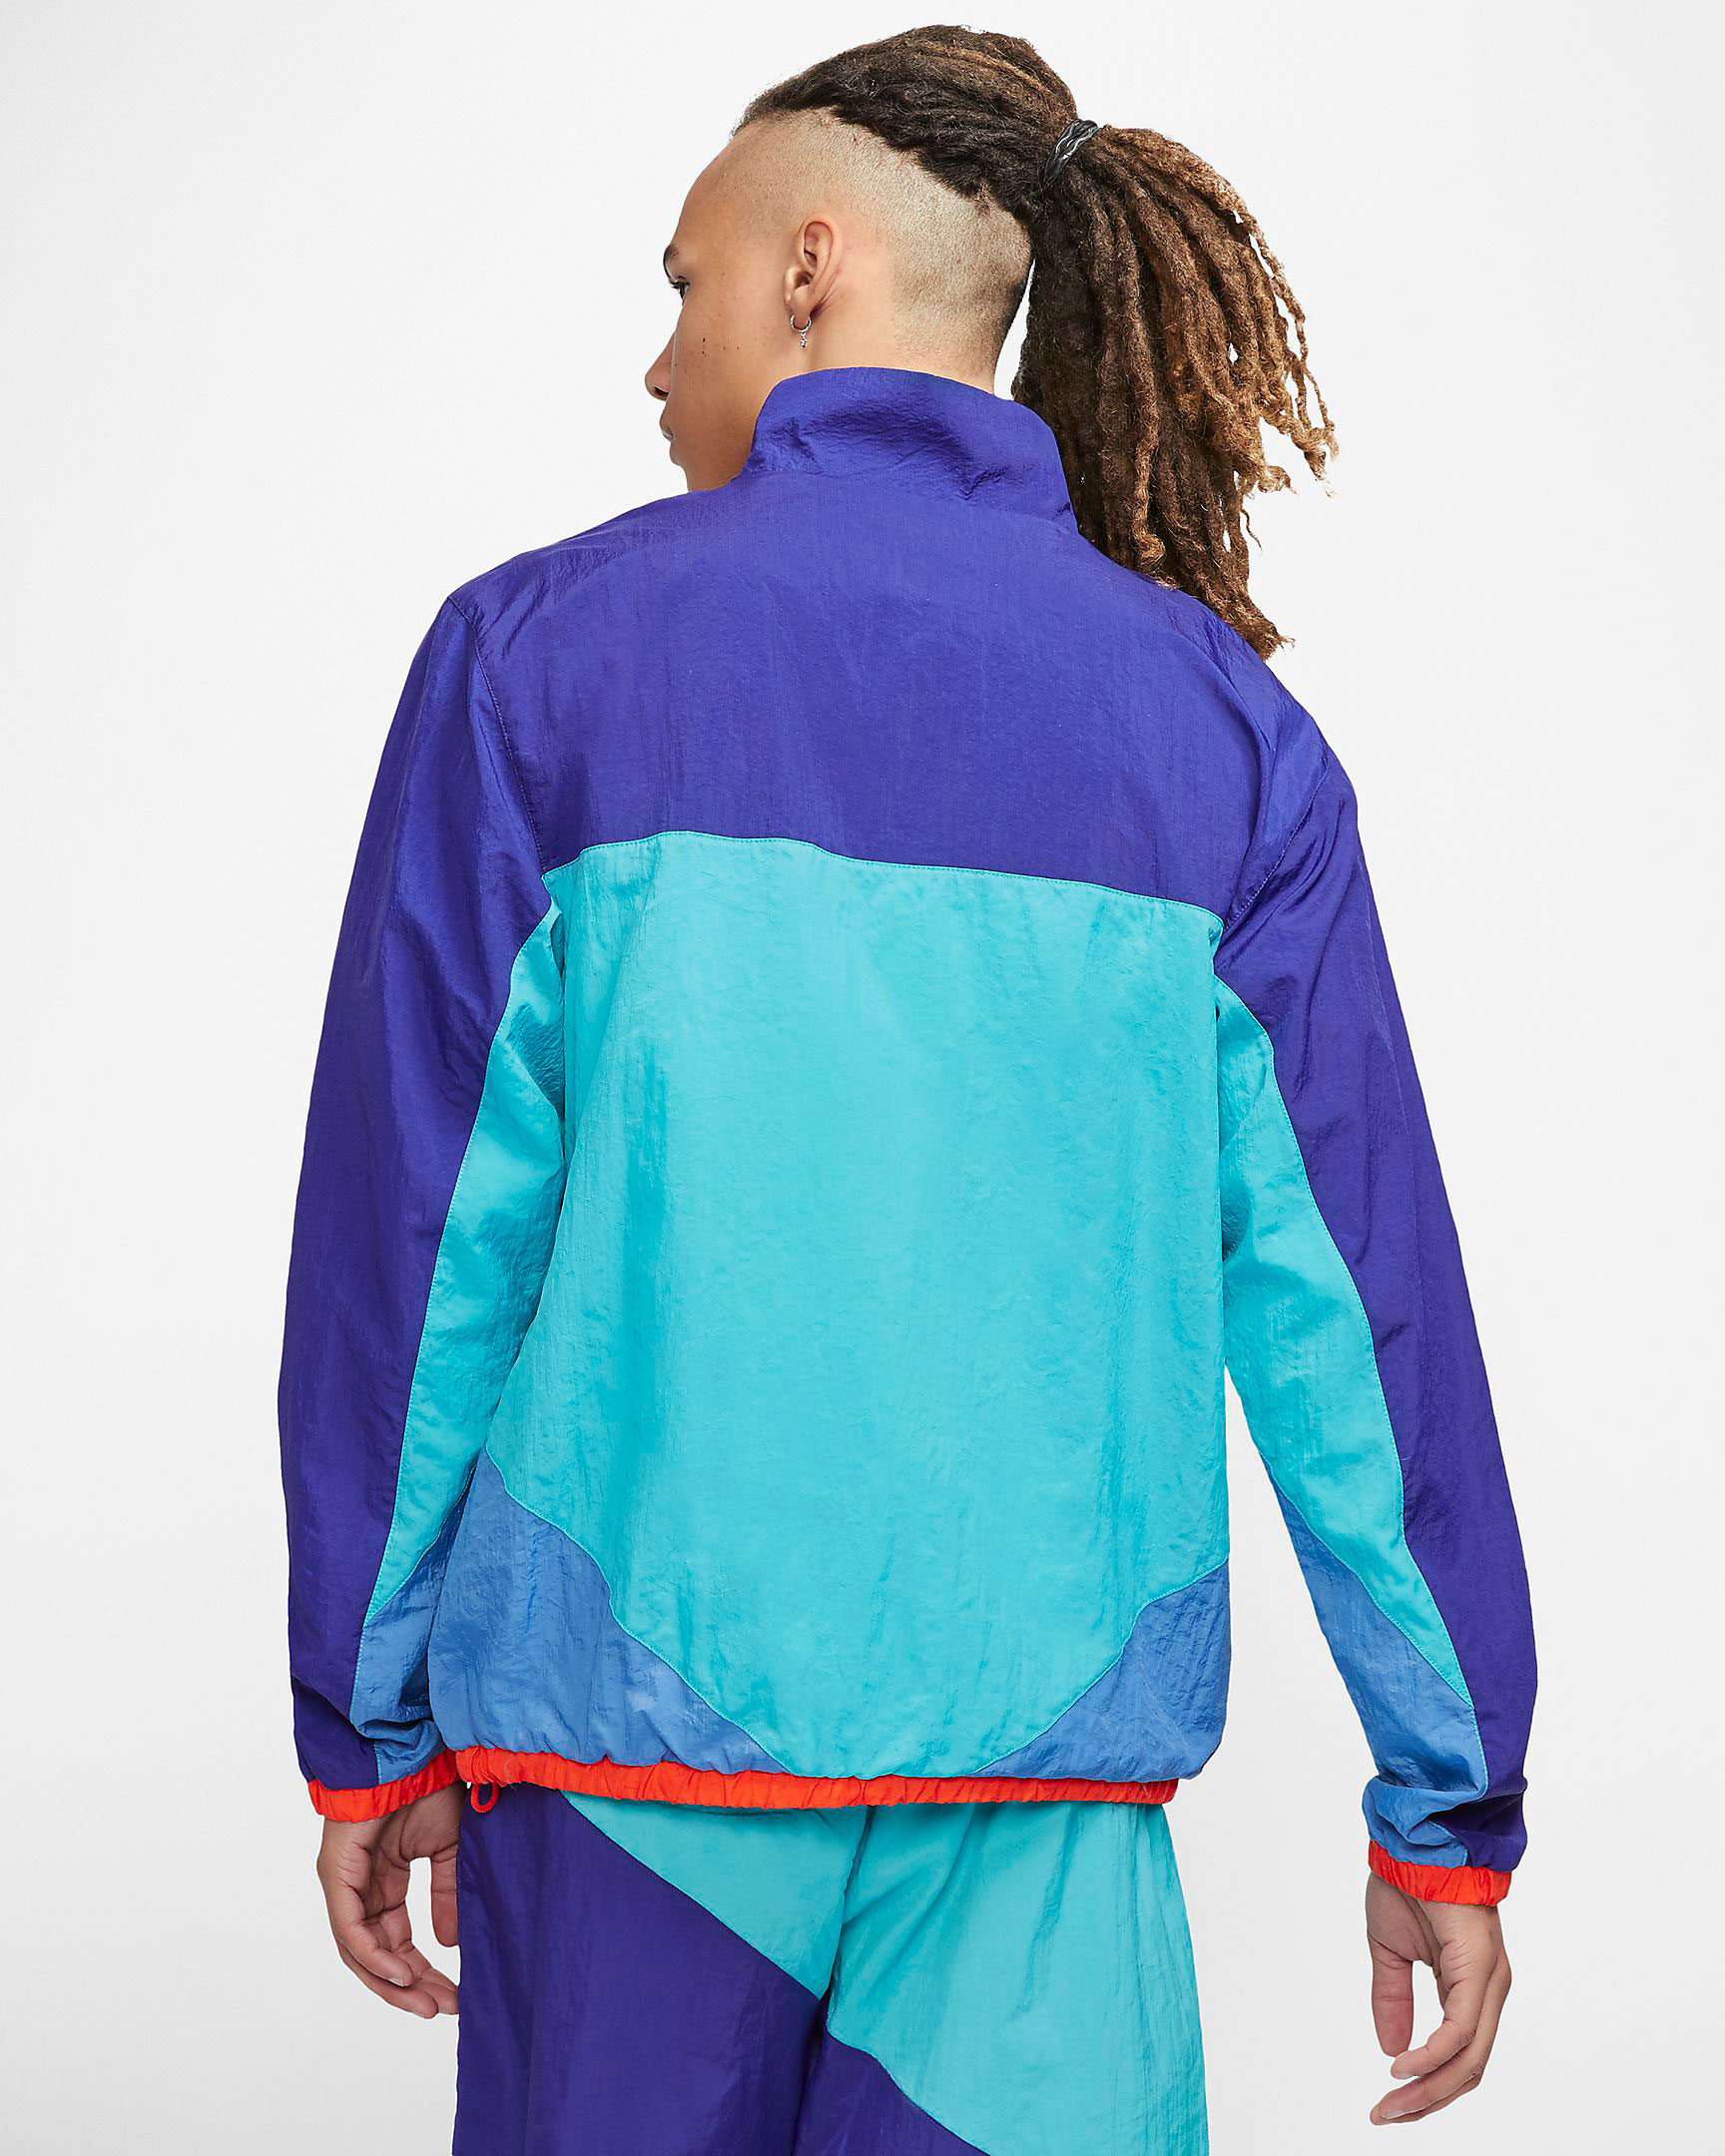 nike-flight-purple-teal-aqua-jacket-2